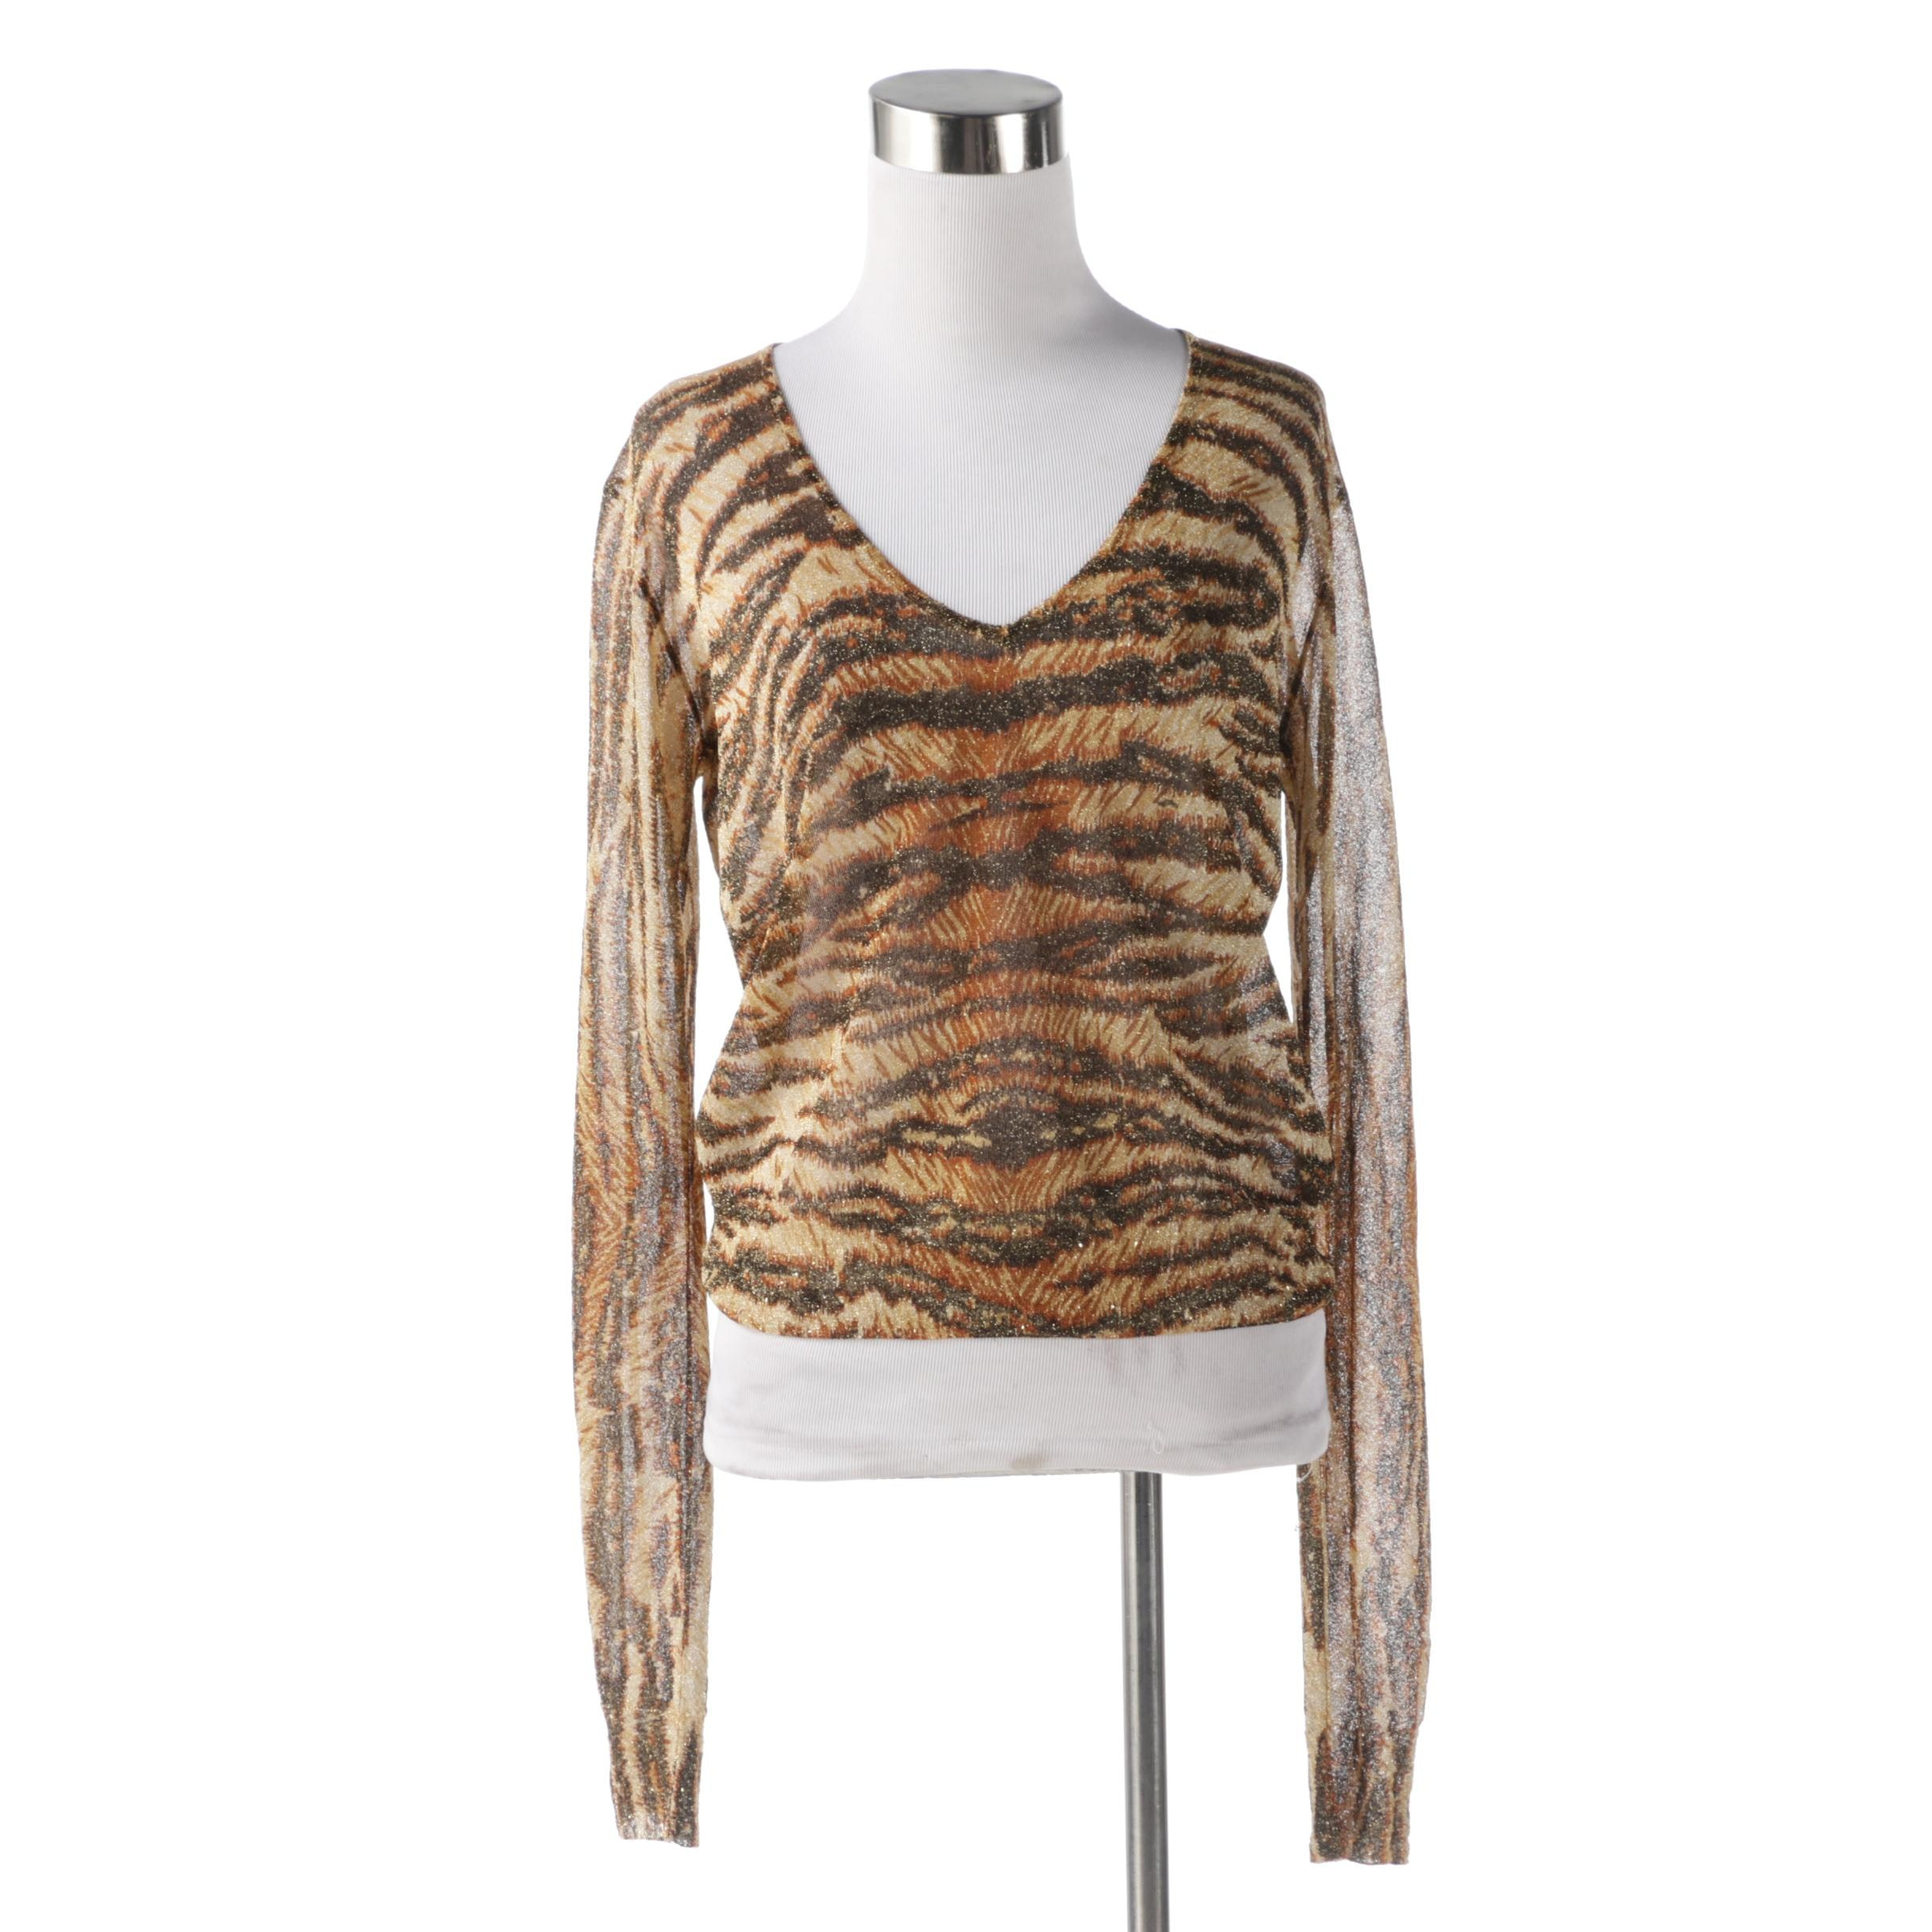 Dolce & Gabbana Tiger Print Transparent Top